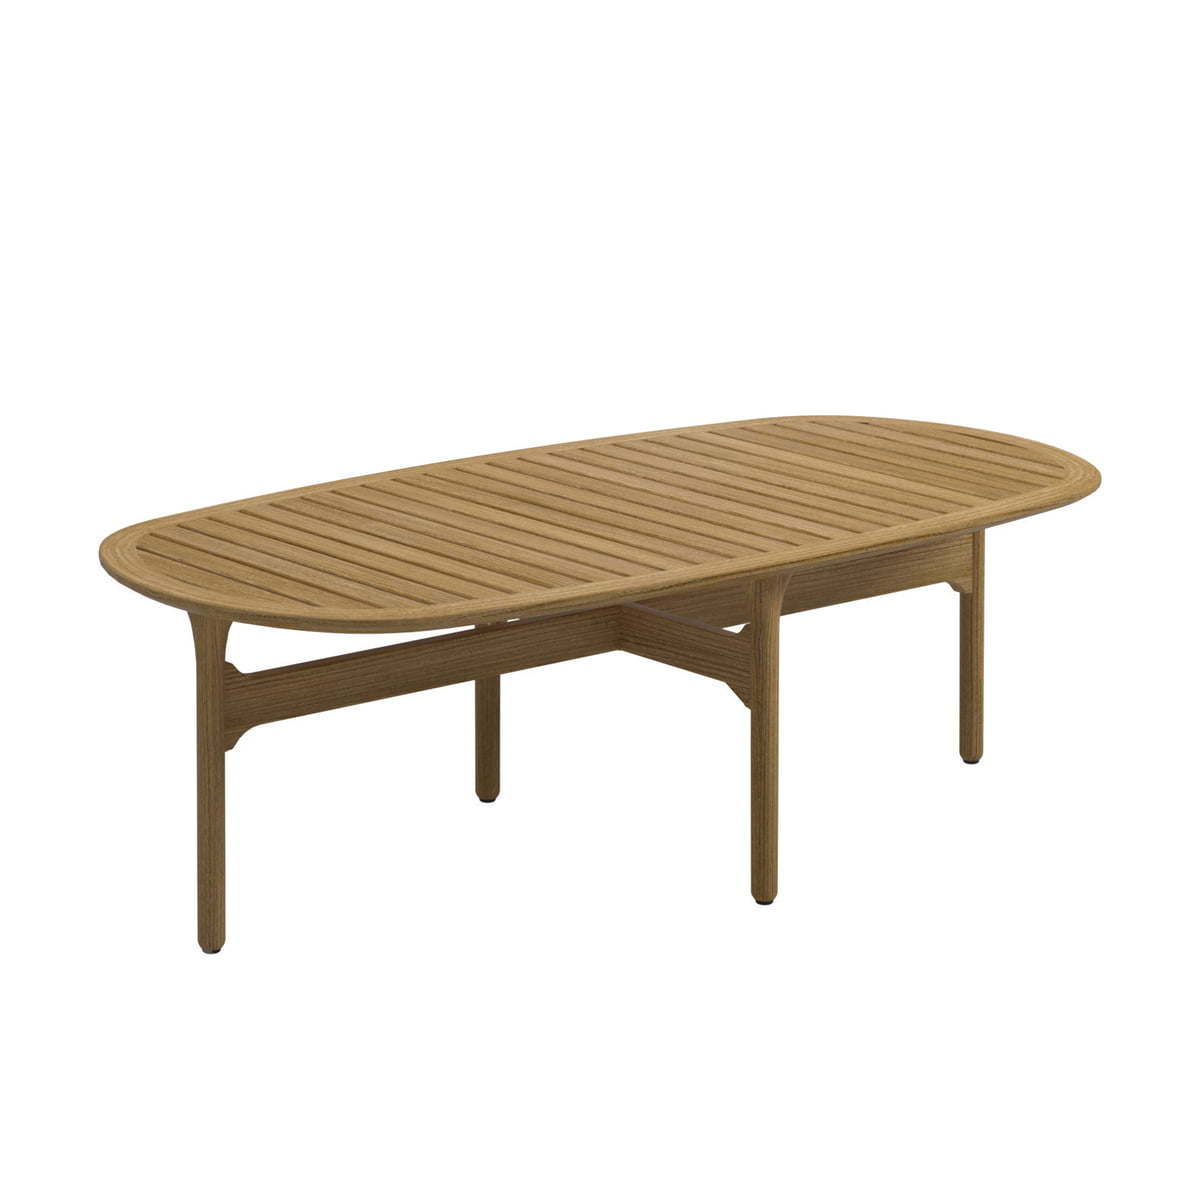 Teak Garden Coffee Table Uk: Wood Lounge Table By Gloster